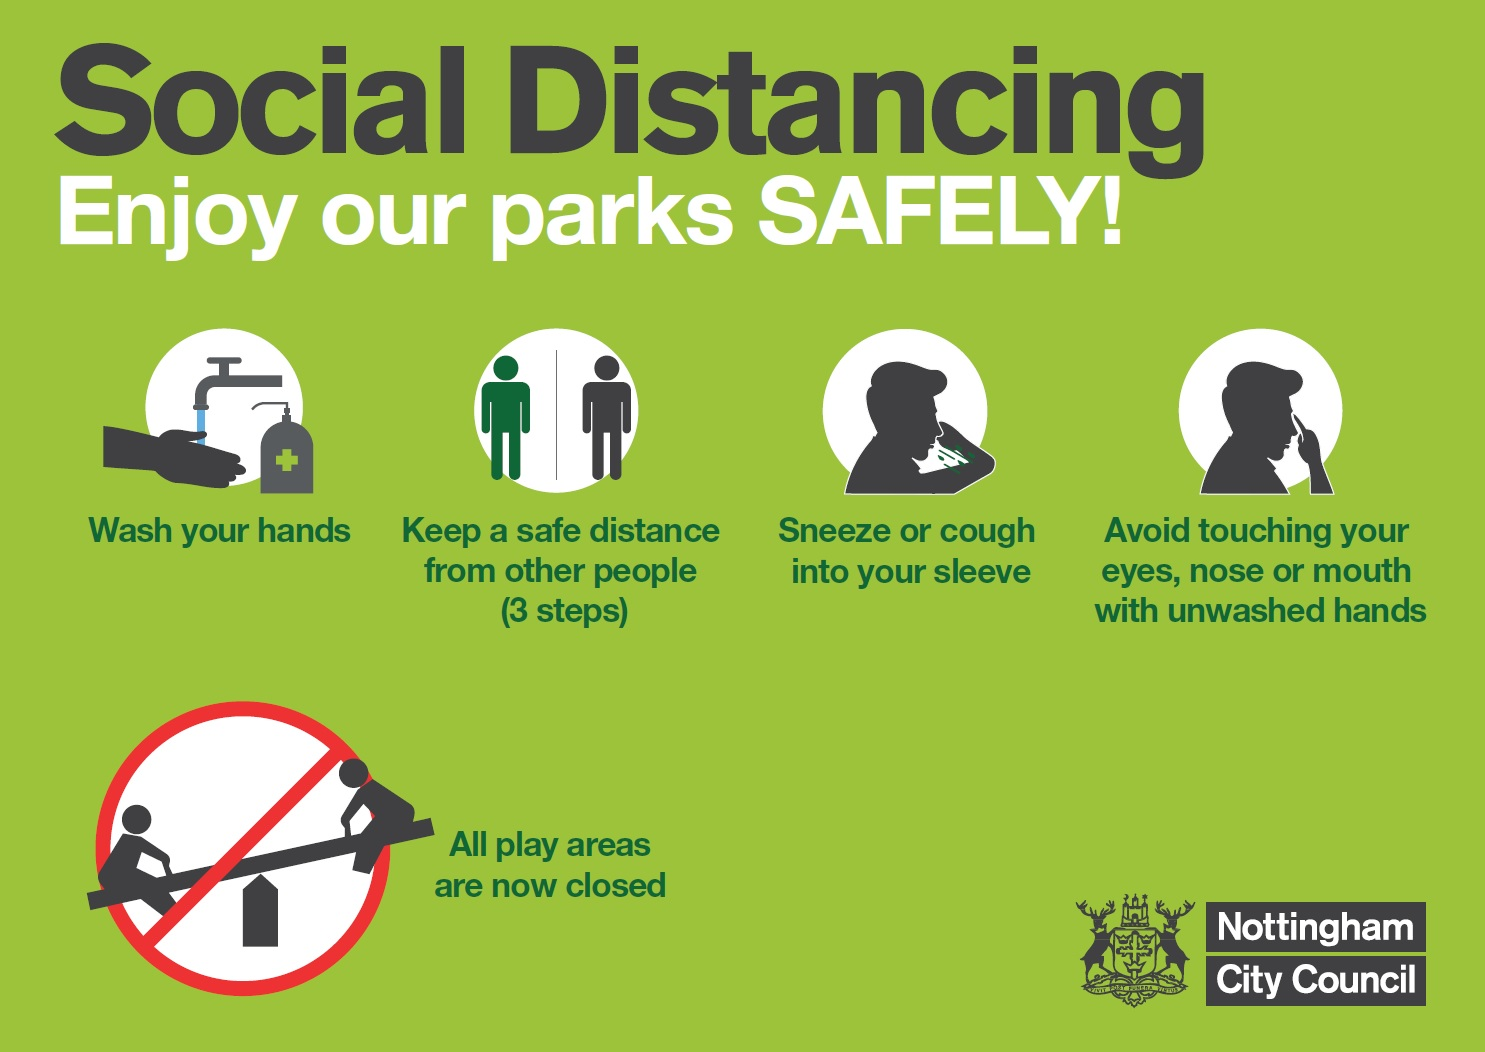 Social distancing - enjoy our parks safely. Wash your hands. Keep 3 paces distance. Sneeze or cough into your sleeve. Avoid touching your face. Play areas are now closed.